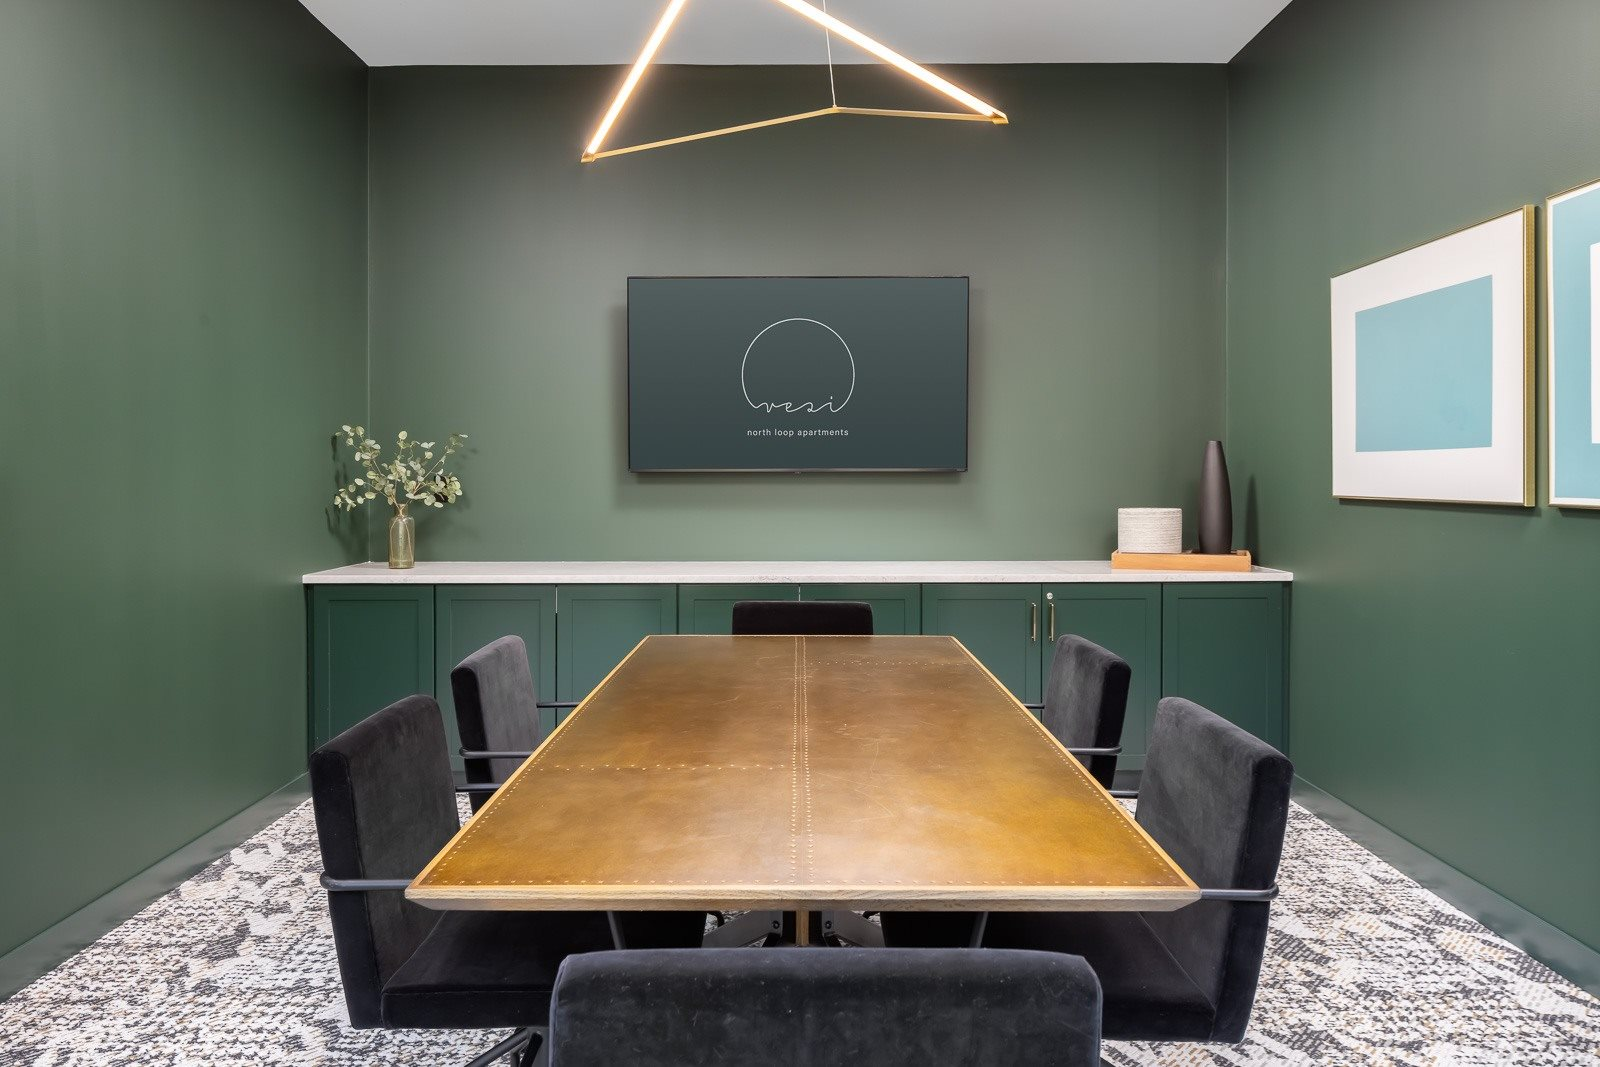 Conference room with HDMI connection ability for apartment residents